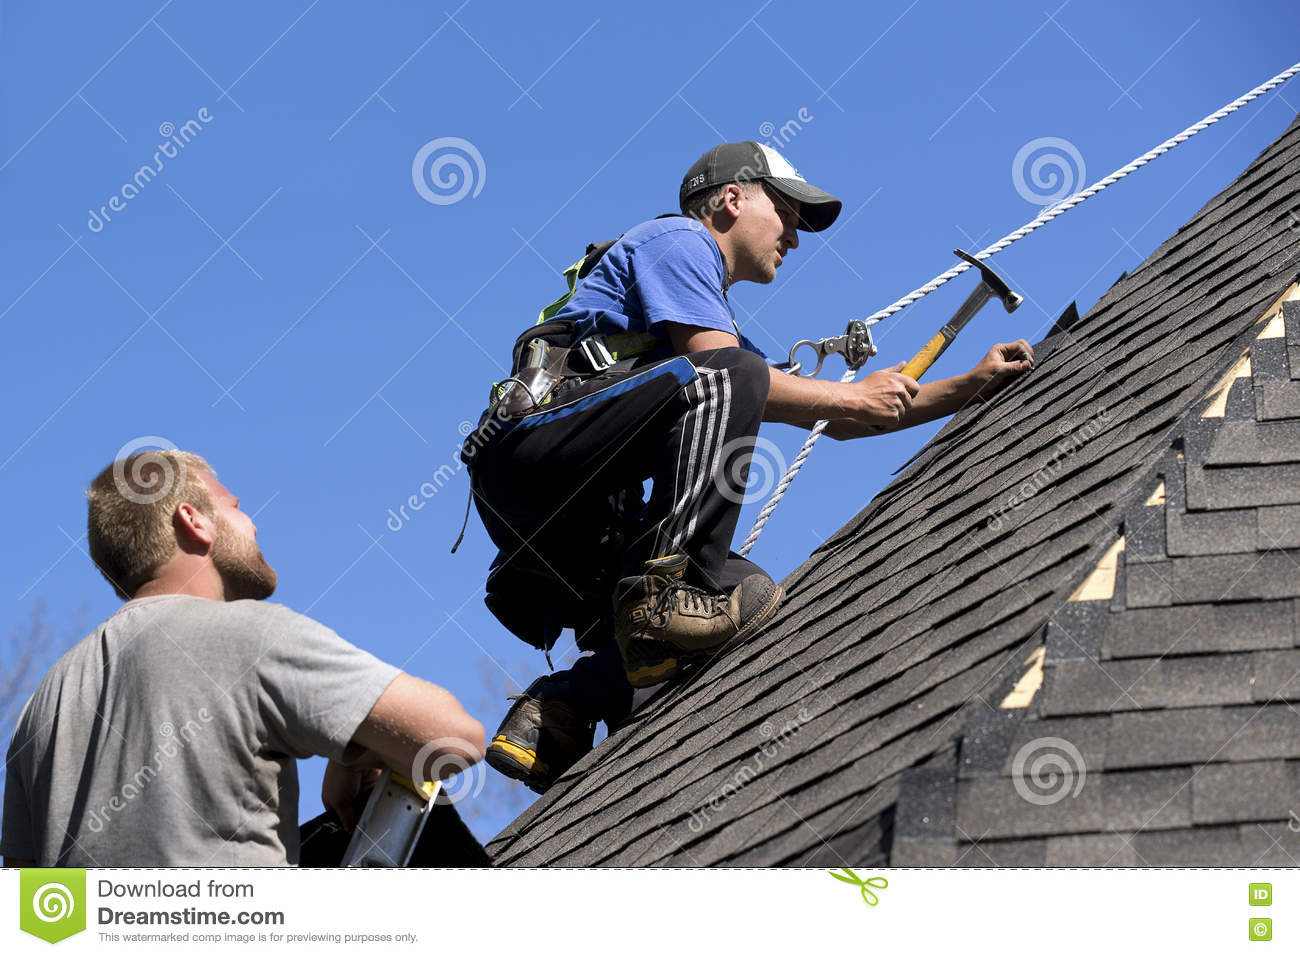 Roofers on a Steep Pitch